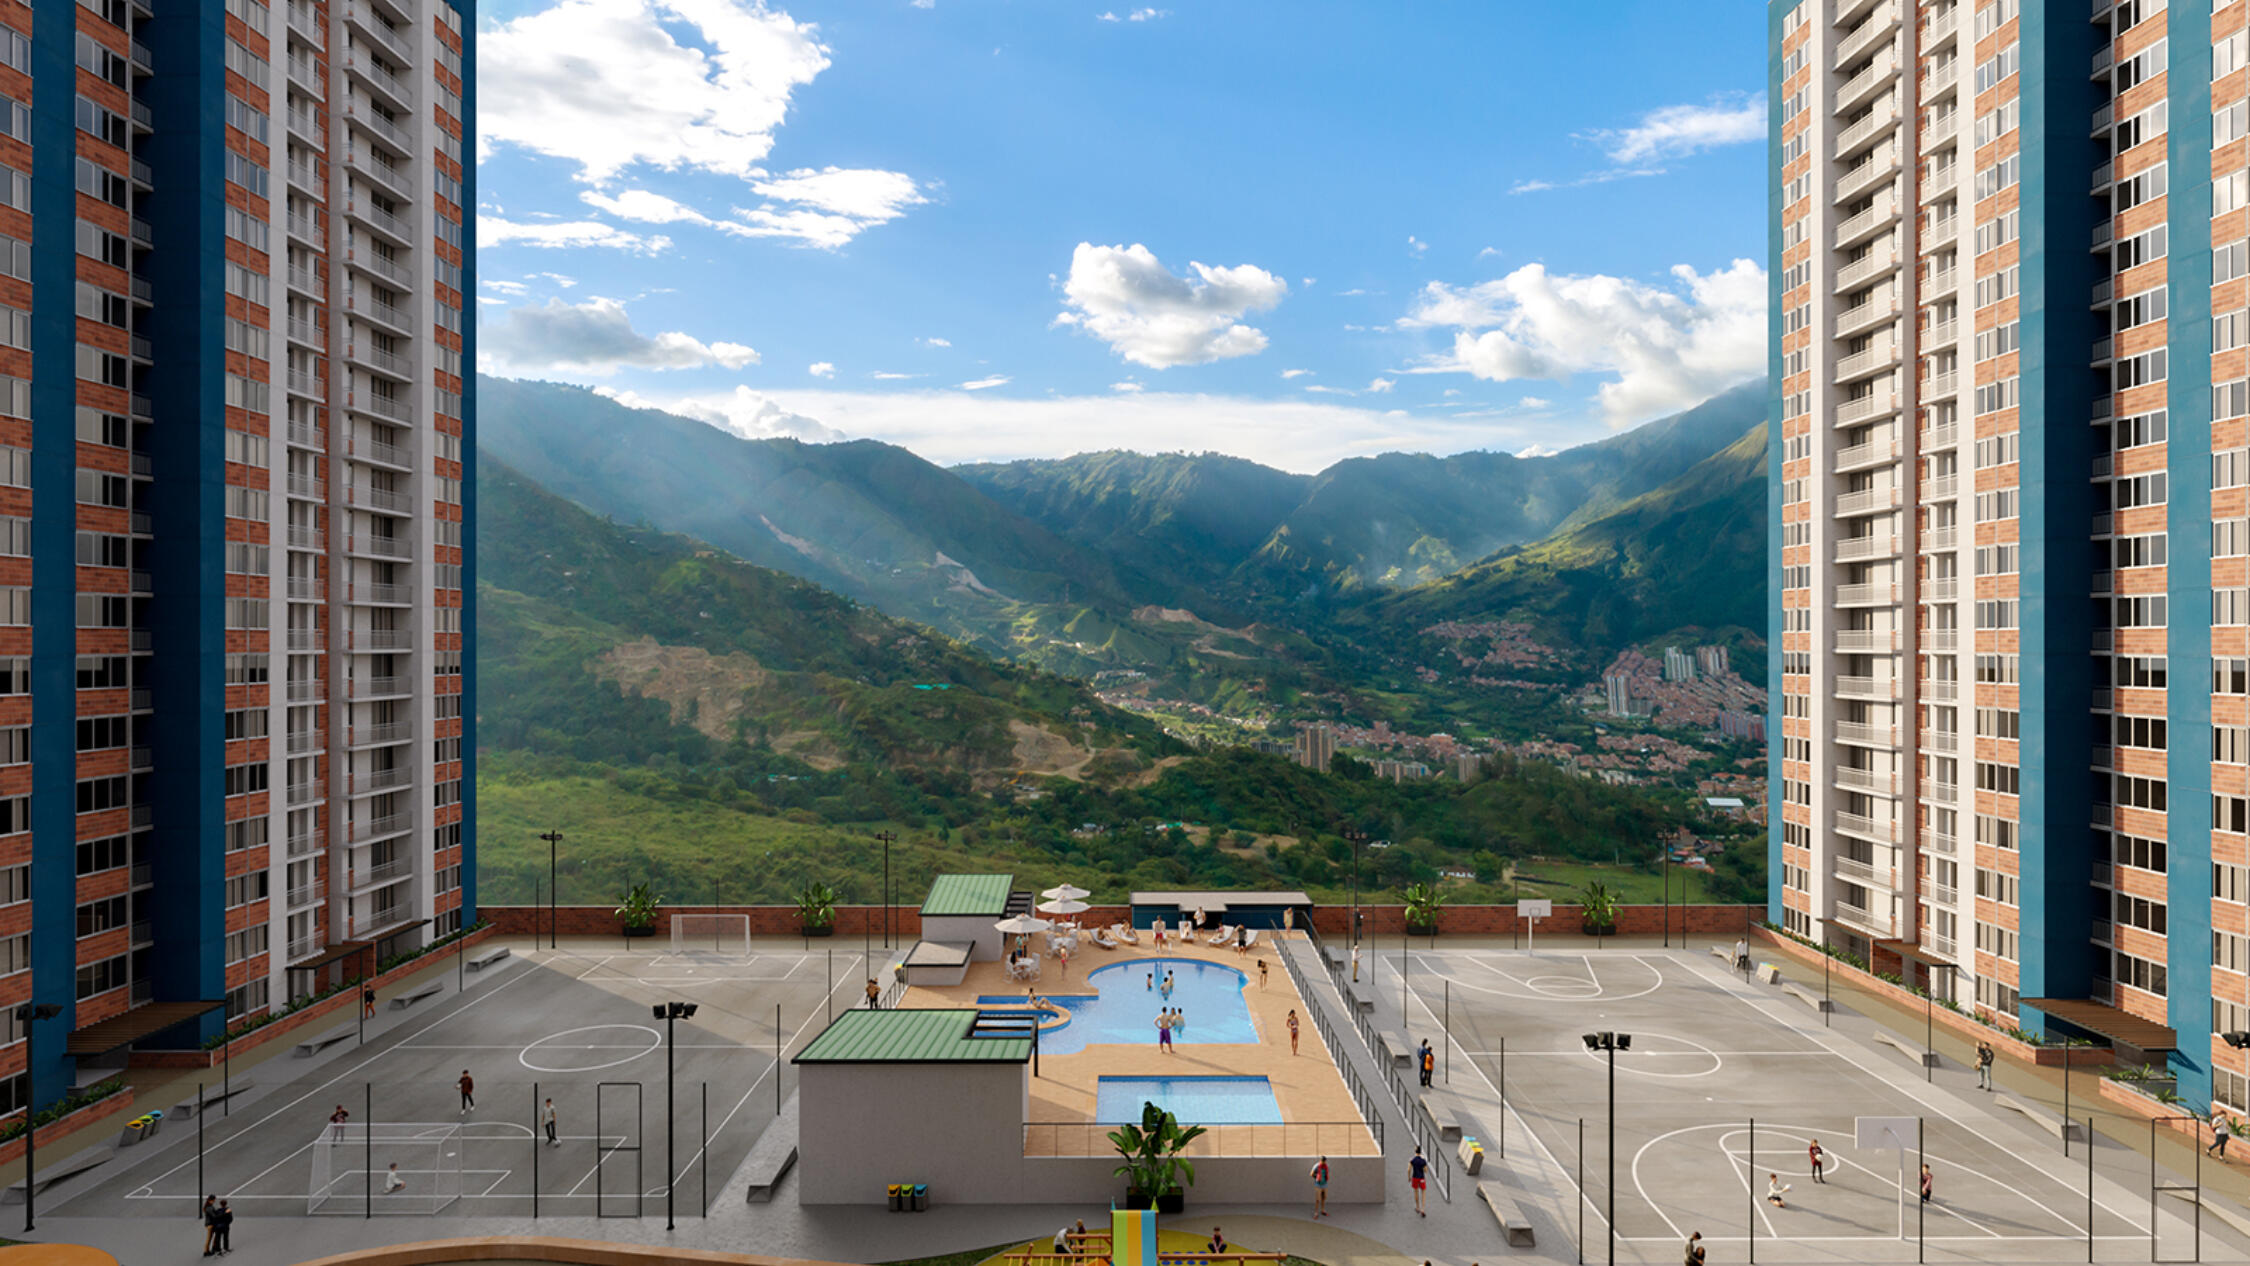 Rendering of apartment complex with sports courts in the middle and mountains in the distance.